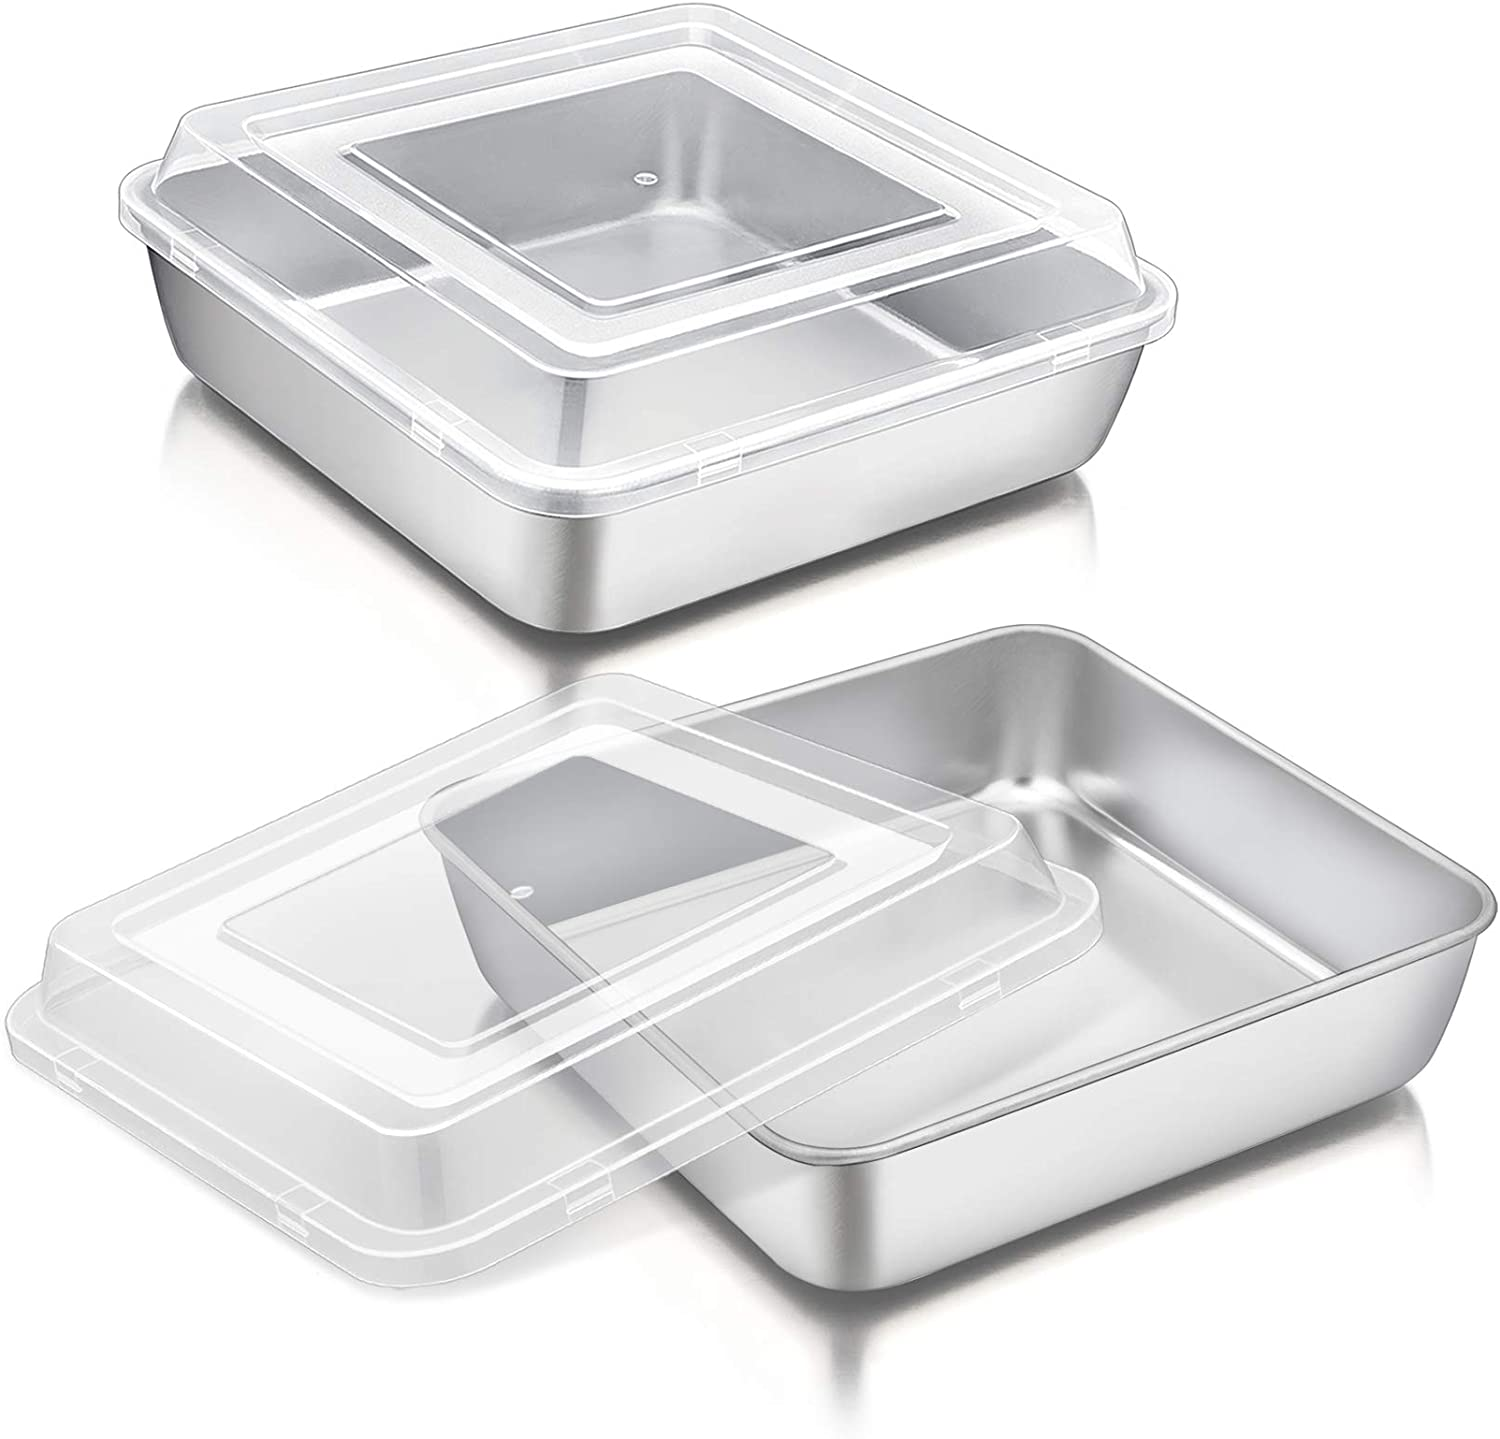 8 Inch Square Cake Pan with Lid, P&P CHEF Stainless Steel Baking Pans and Lids, For Lasagna Brownie Cake, Heavy Duty & Food Grade, Durable Pans & Plastic Covers, Oven & Dishwasher Safe (2 Pans+2 Lids)